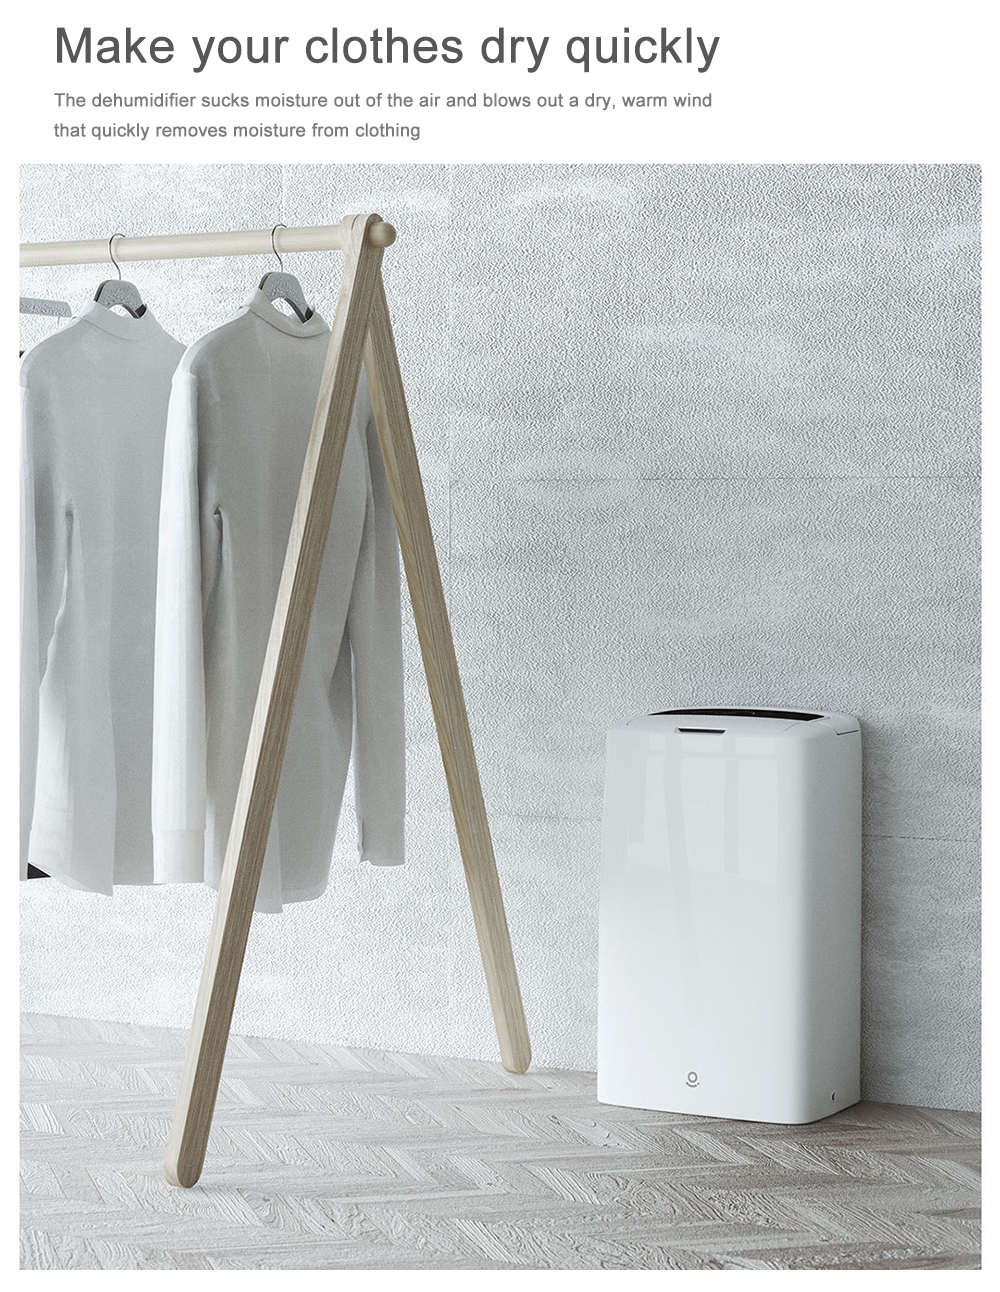 WS1 Efficient Intelligent Humidity Control Dehumidifier from Xiaomi Youpin- White